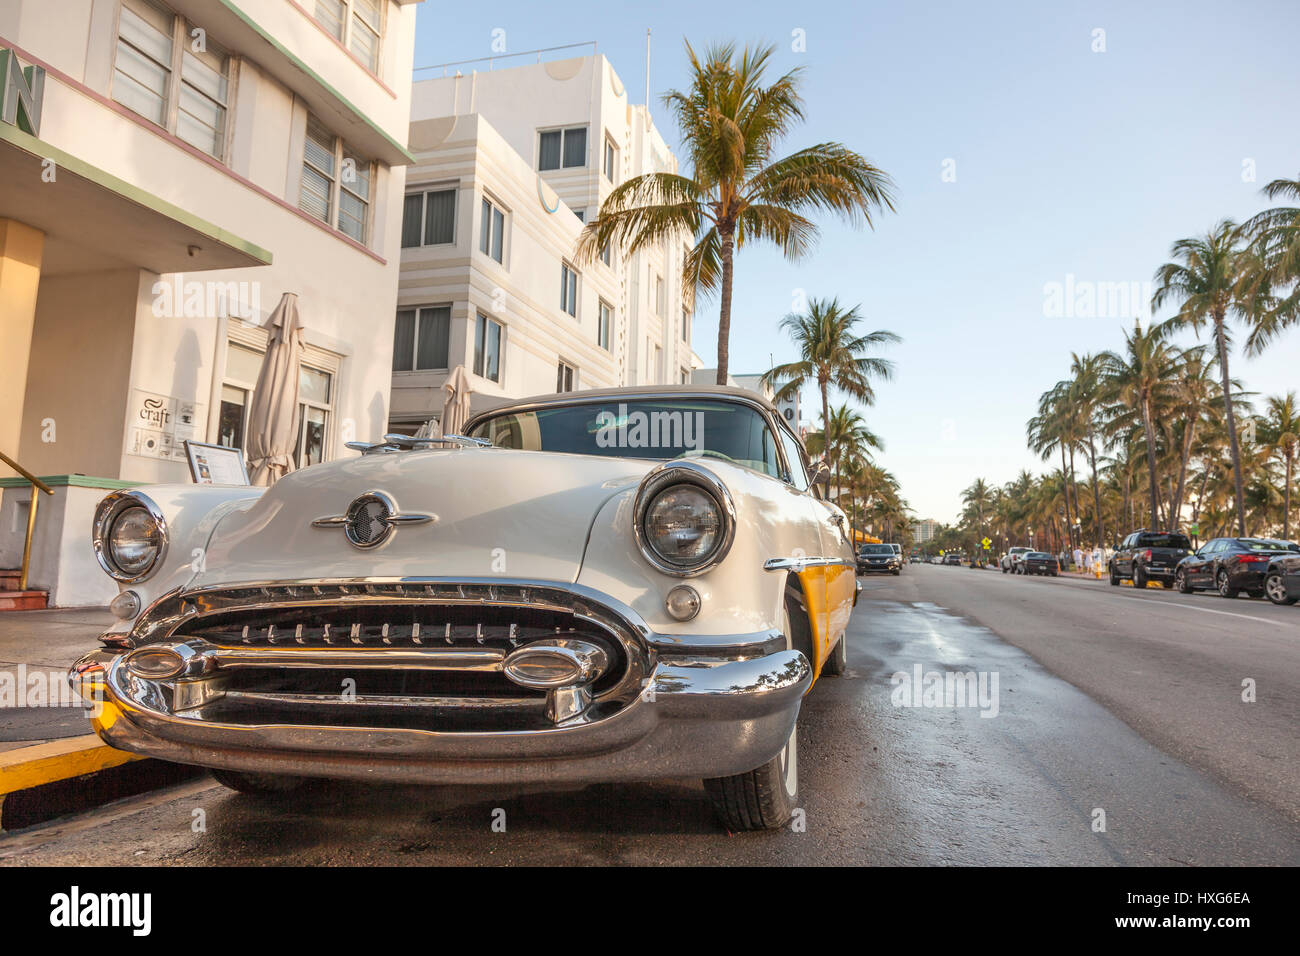 MIAMI, USA - MAR 10, 2017: Vintage american car parked at the famous Art Deco hotels in the Ocean Drive in Miami - Stock Image